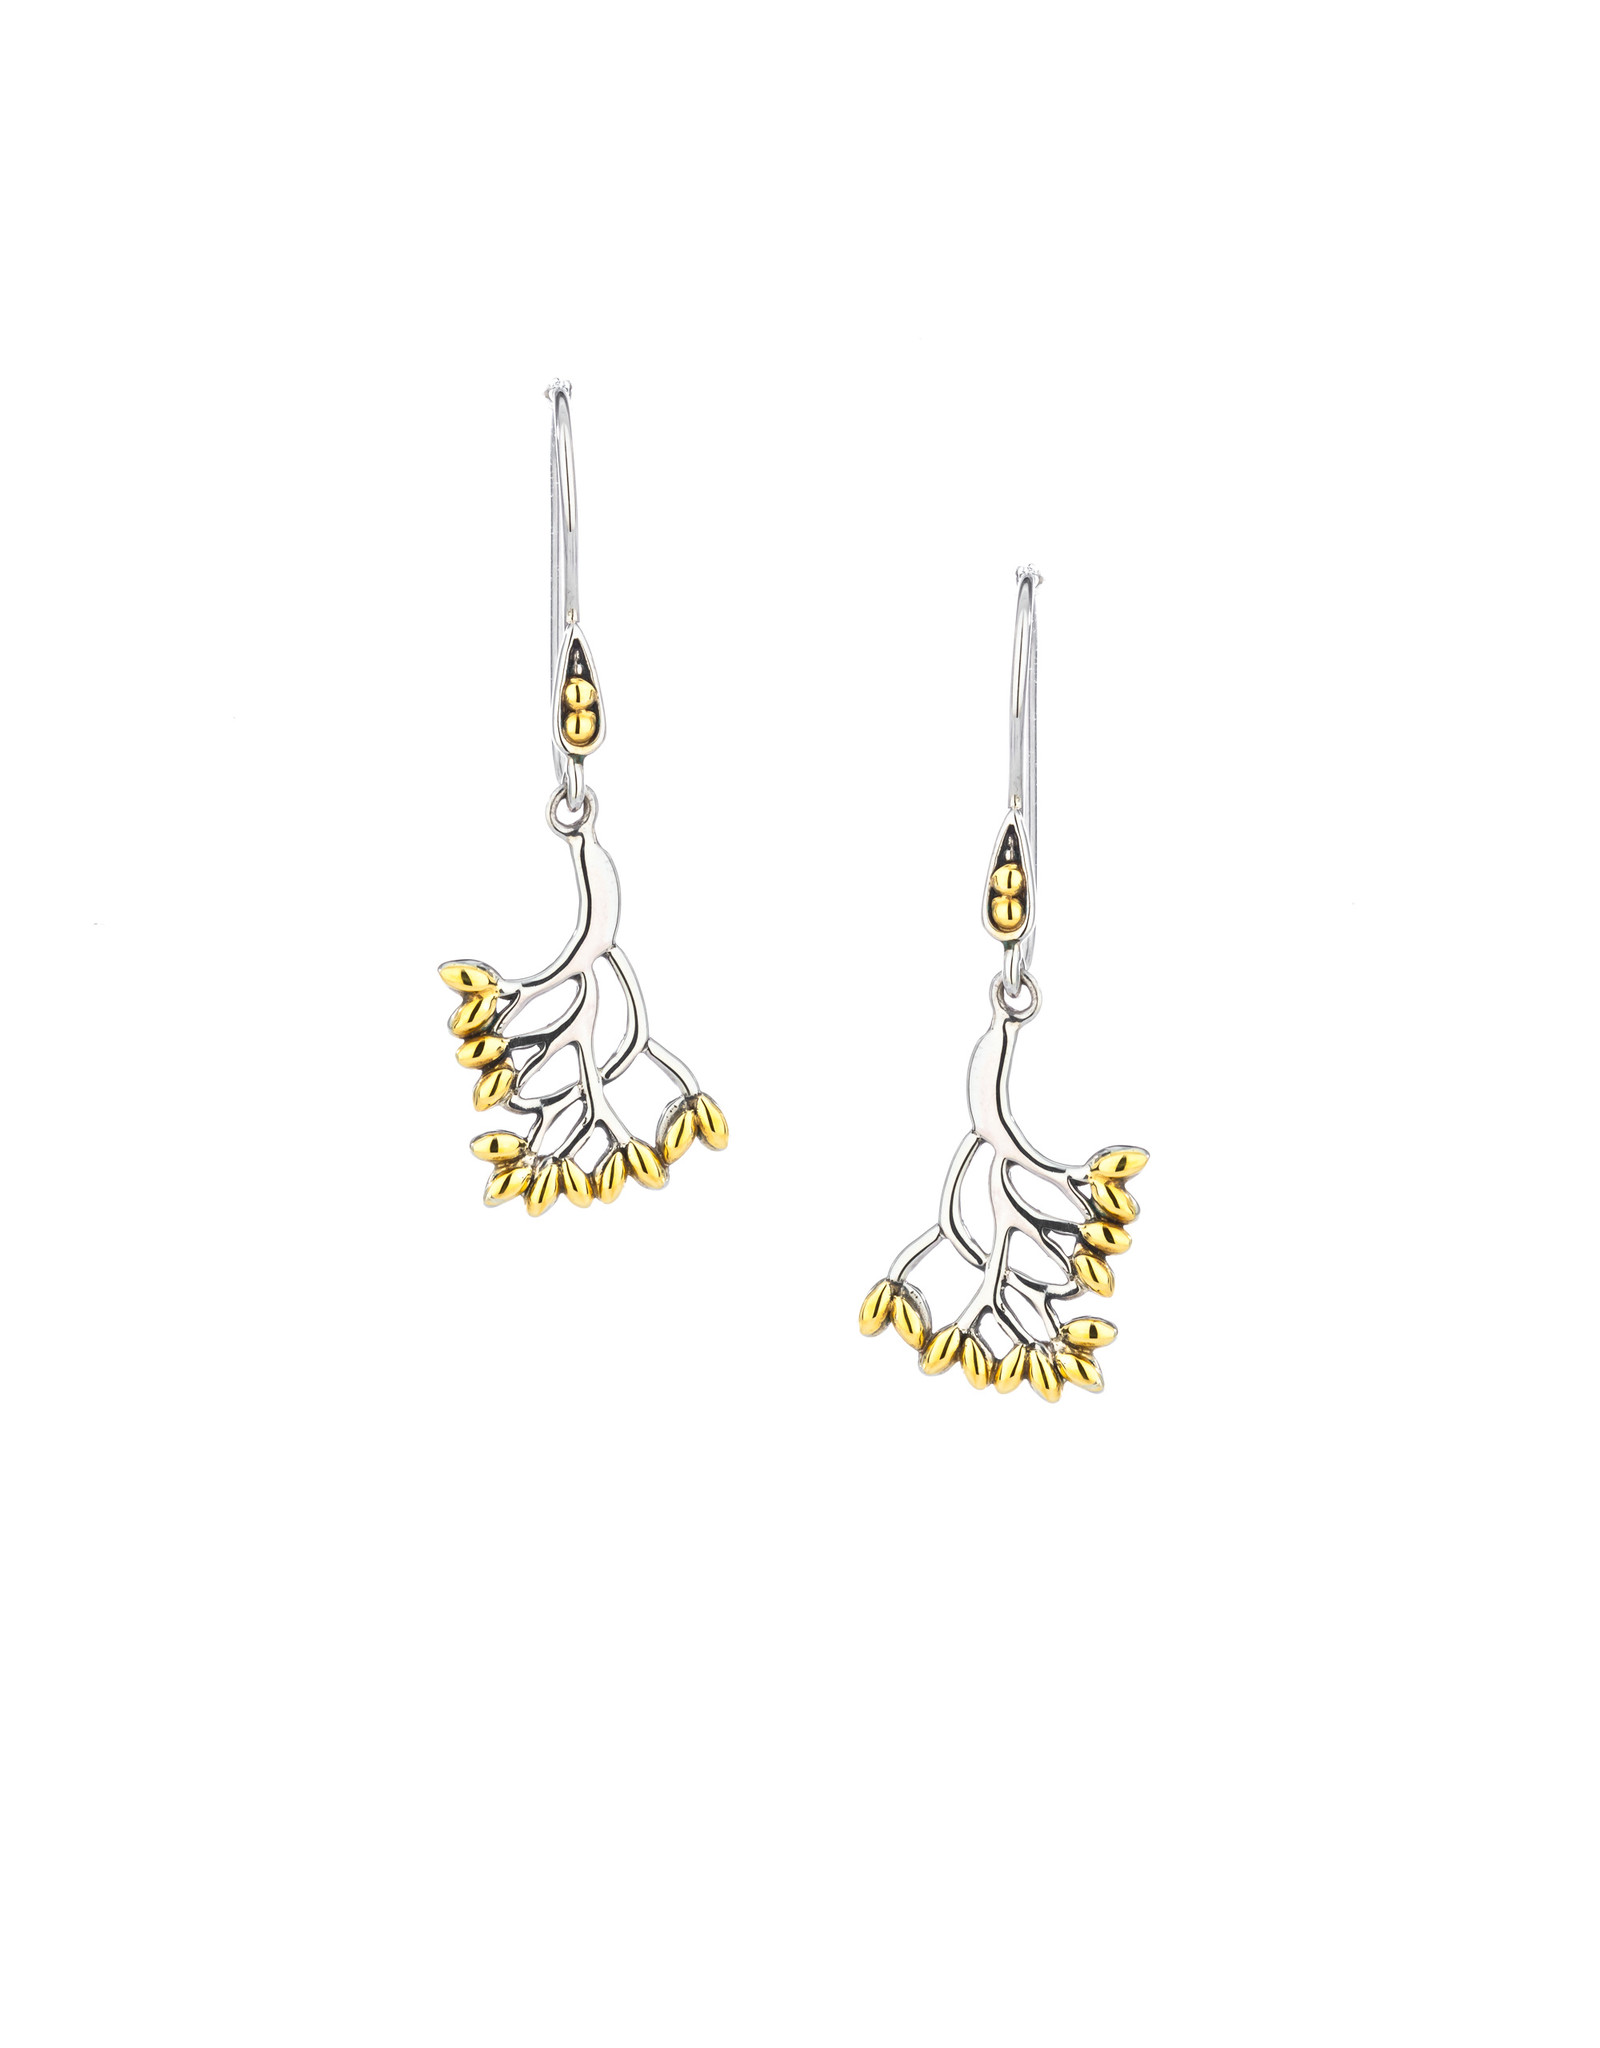 Keith Jack Tree of Life Earrings (Small) SS/18KY